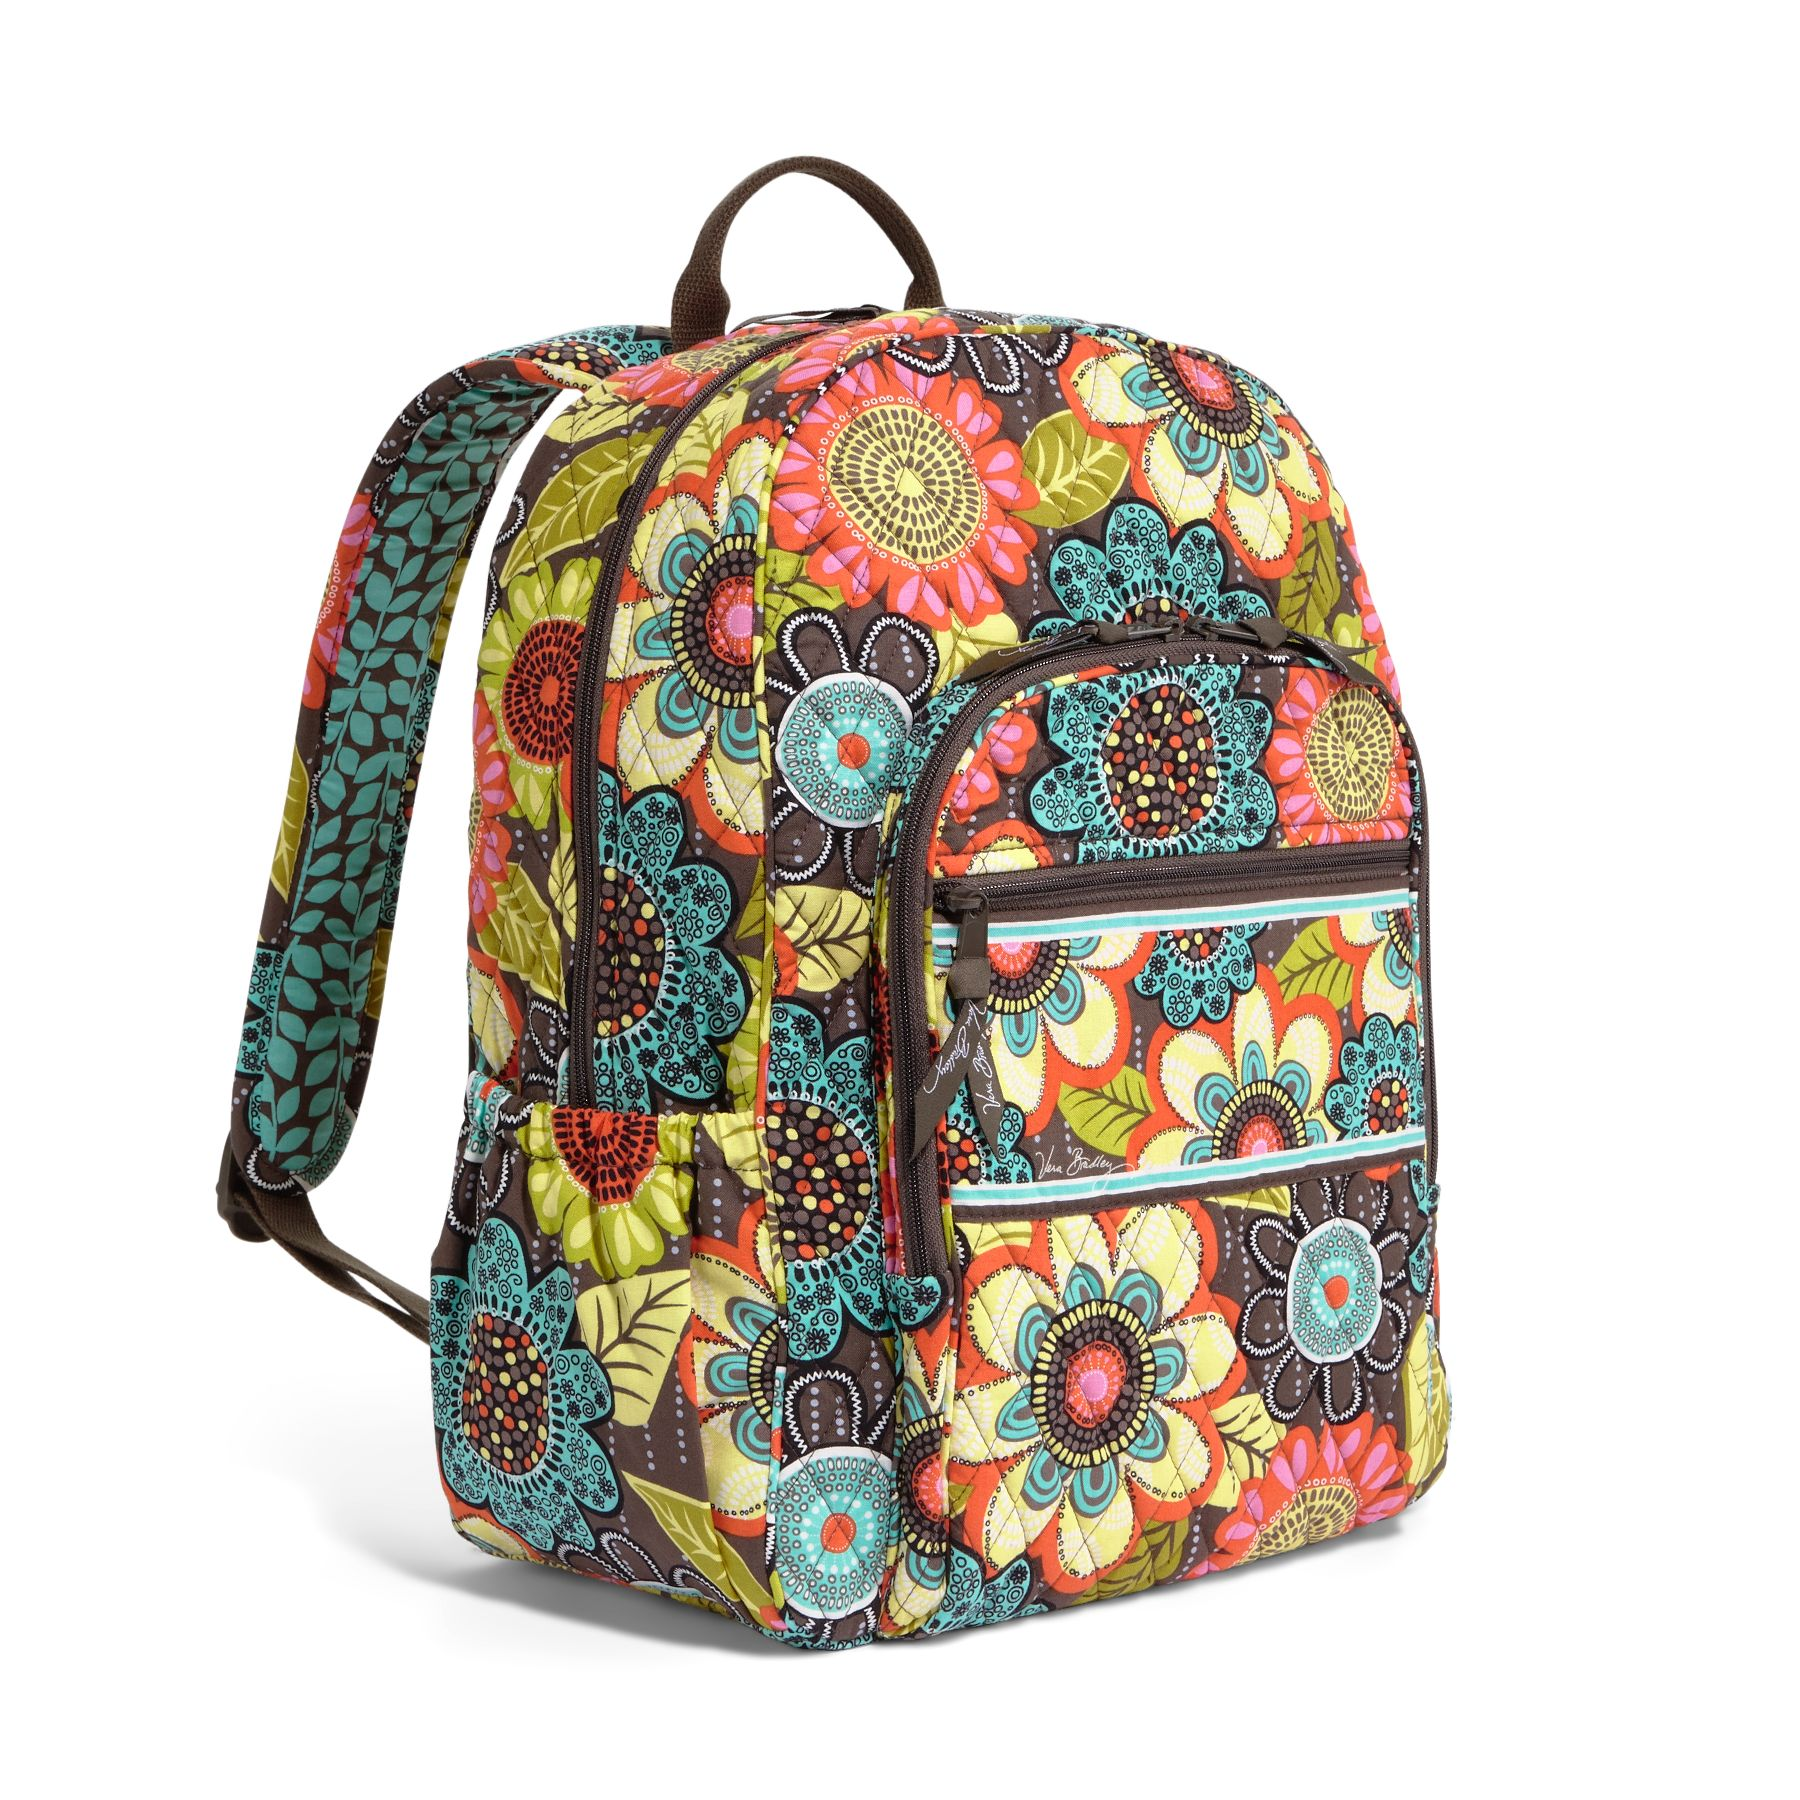 Vera Bradley's trademark style is fashionable quilted cotton bags in all sizes in shapes. Perfect for any professional or casual look, Vera Bradley purses come in crossbody, satchel, tote bag, backpack and shoulder bag styles. Vera Bradley diaper bags provide a practical, yet .